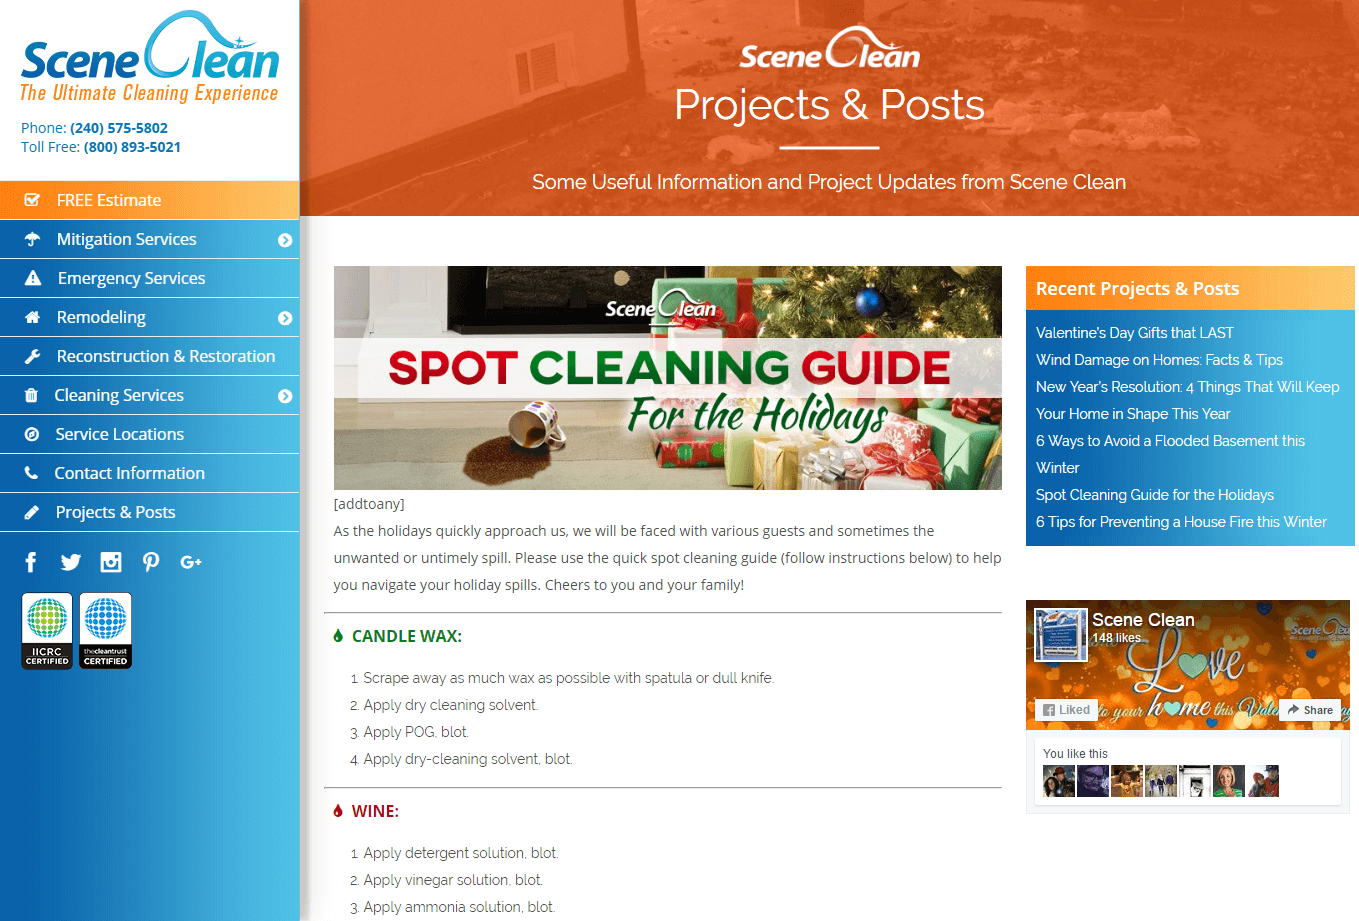 Scene Clean Project Image - Firestride Media